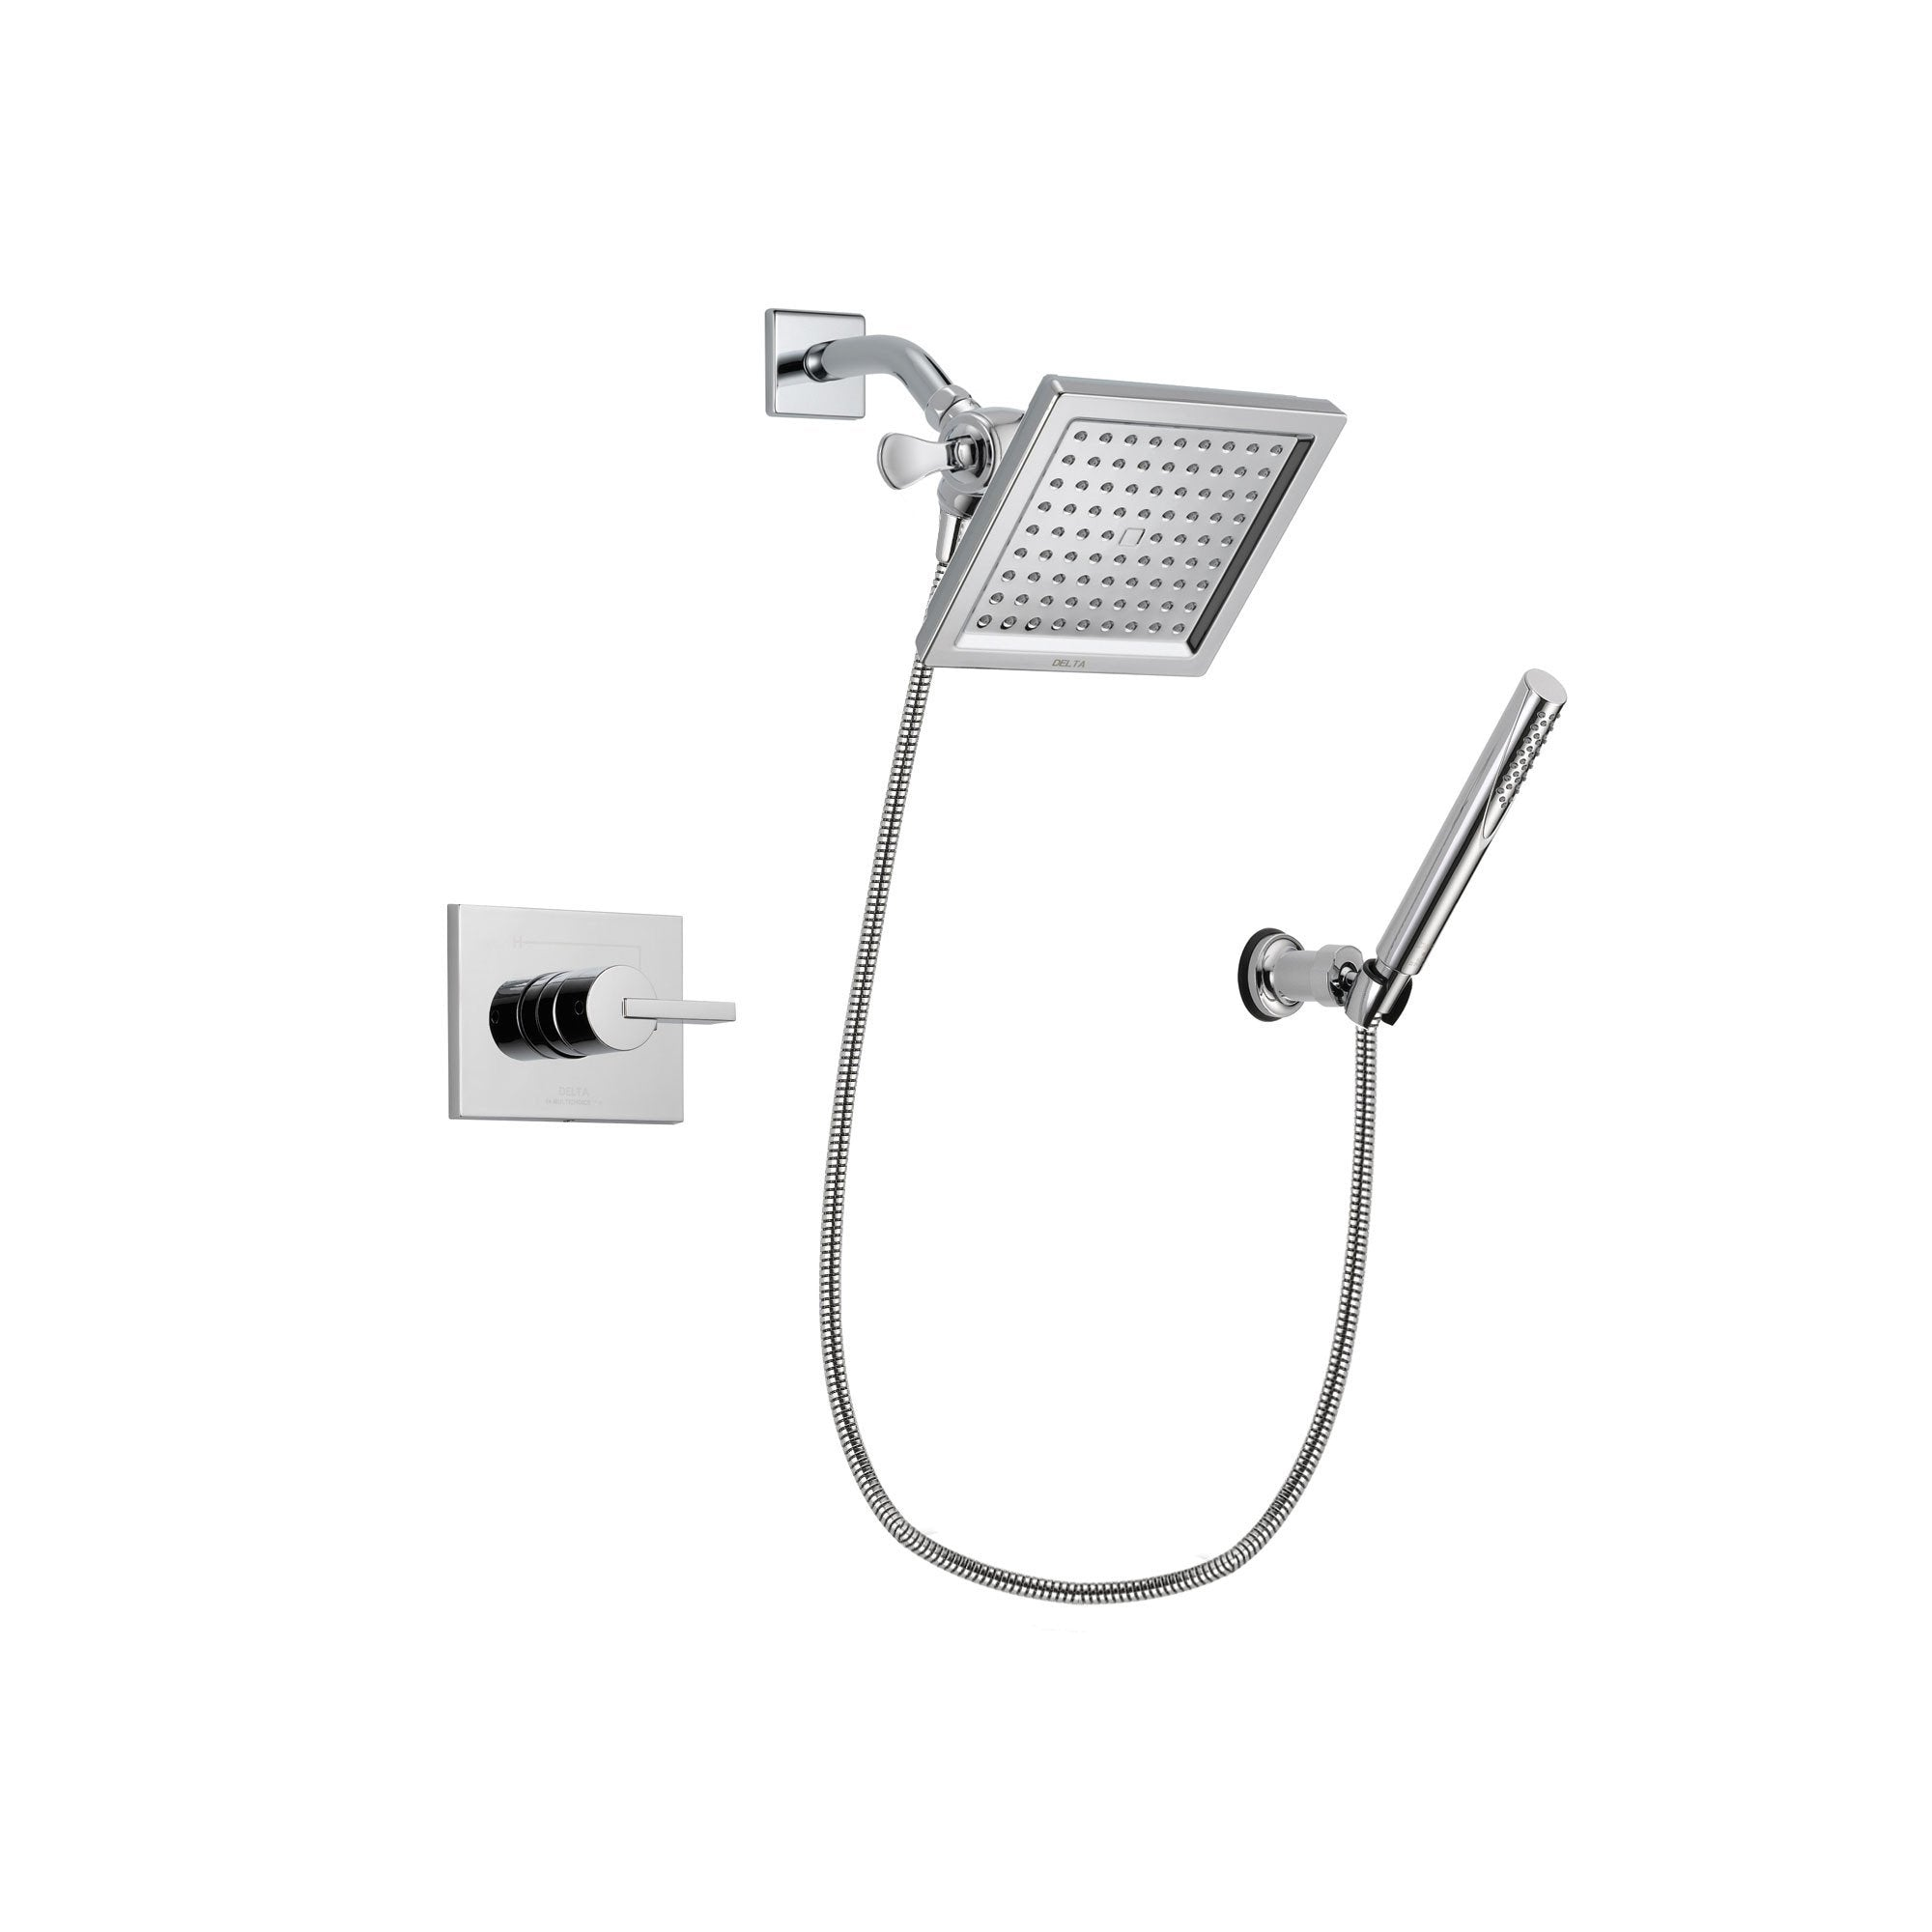 Delta Vero Chrome Shower Faucet System with Shower Head and Hand Shower DSP0073V